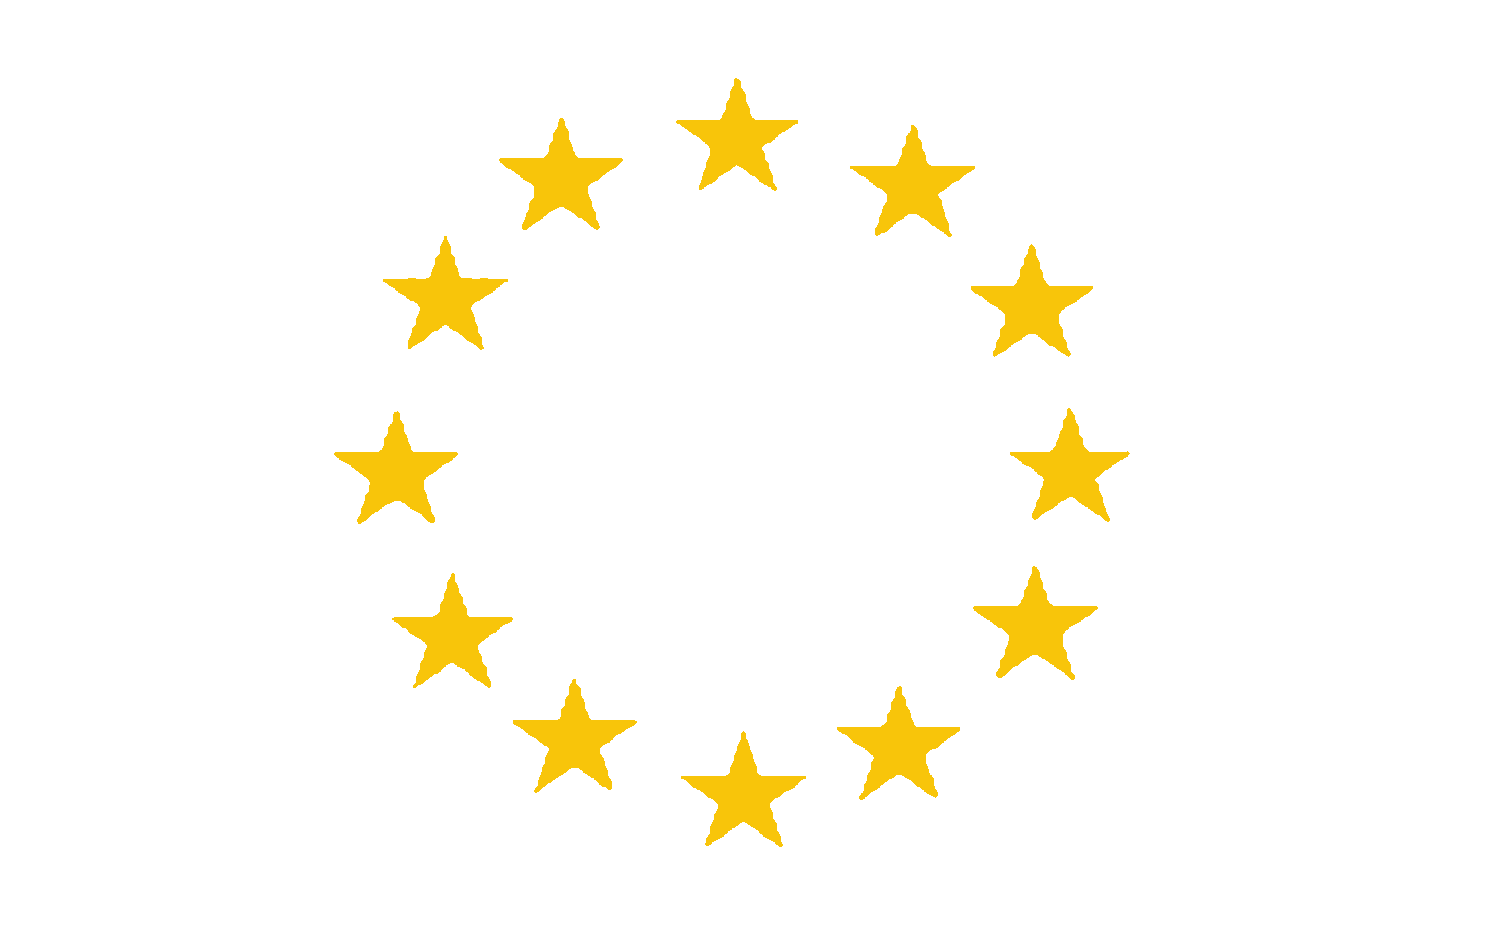 Circle of stars png. Images free star clipart